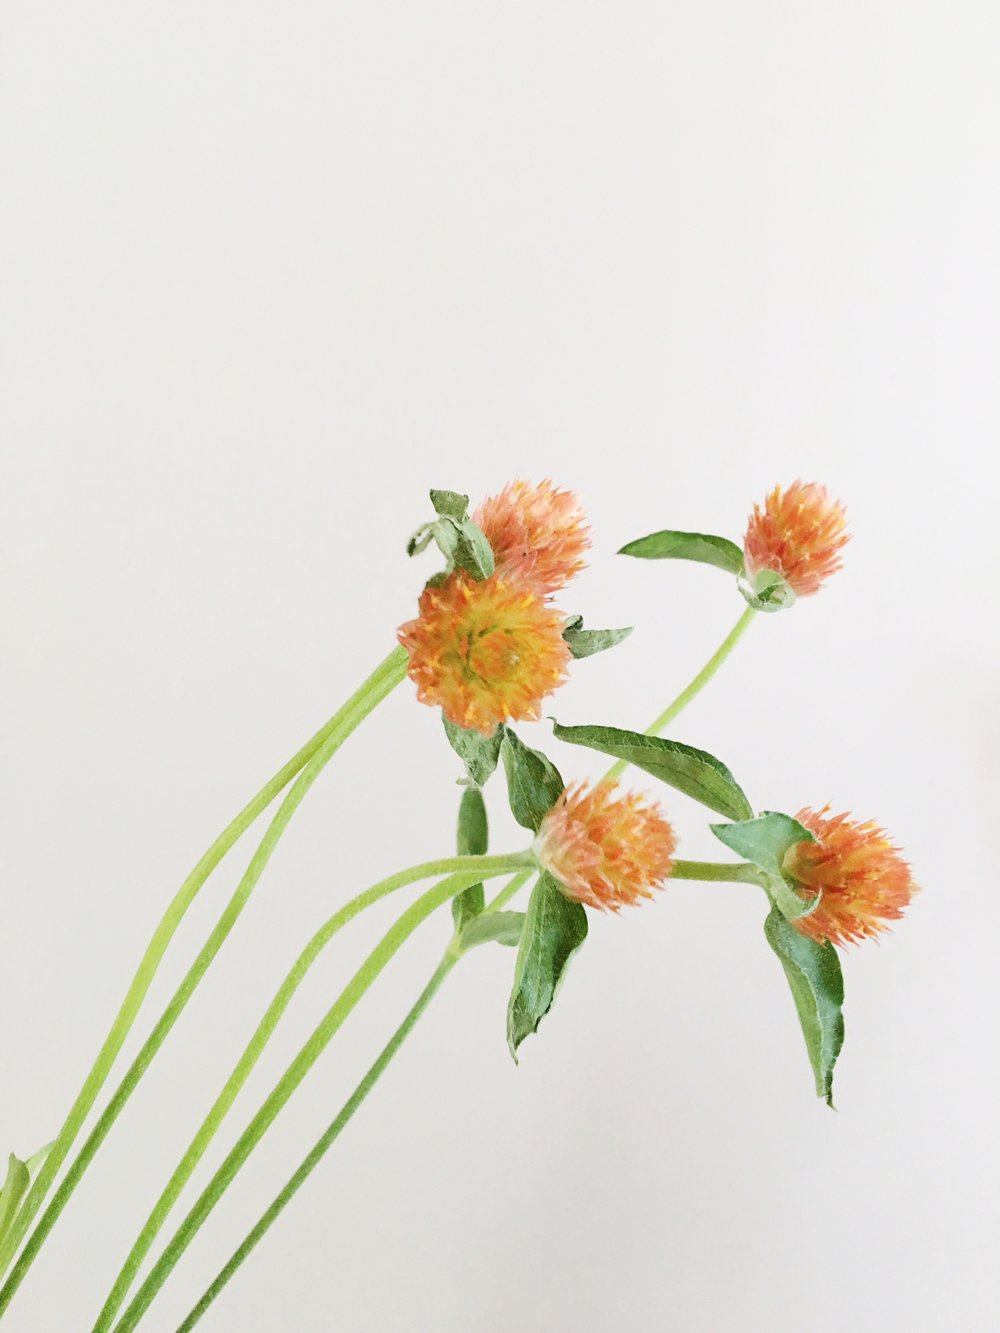 ORANGE GOMPHRENA